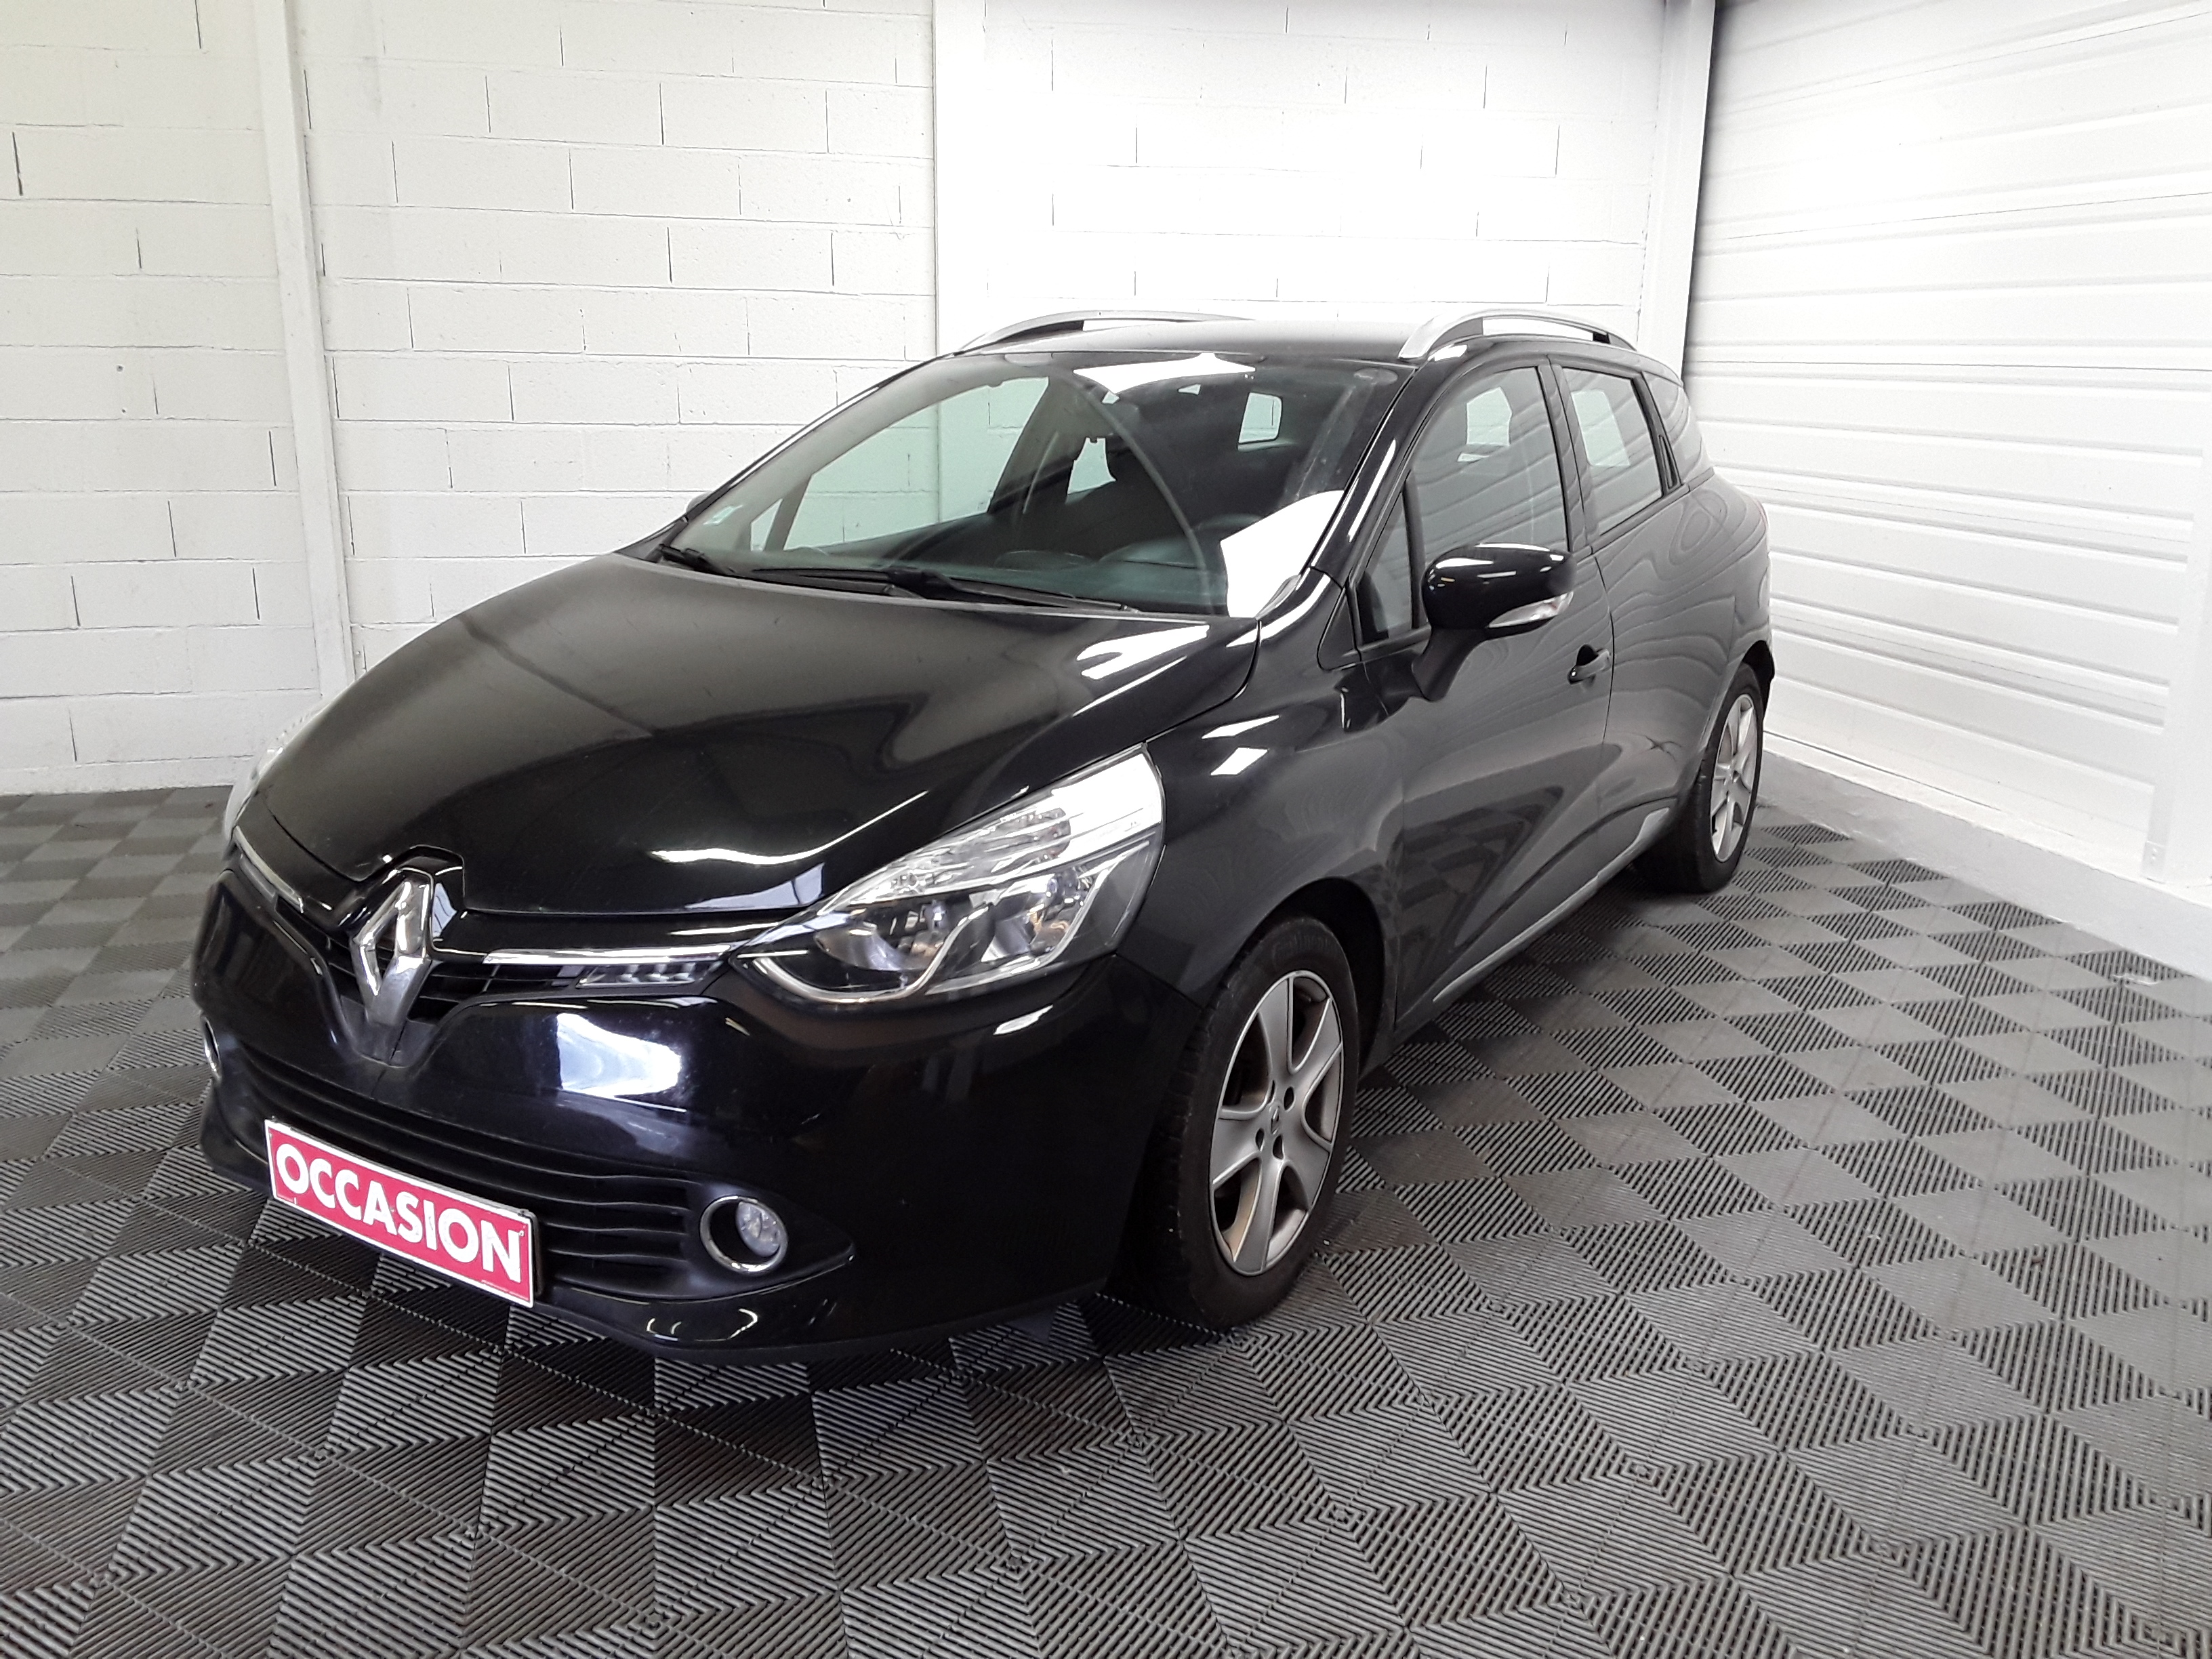 RENAULT CLIO IV ESTATE BUSINESS 1.5 DCI 90CH ENERGY BUSINESS ECO² EDC EURO6 2016 d'occasion